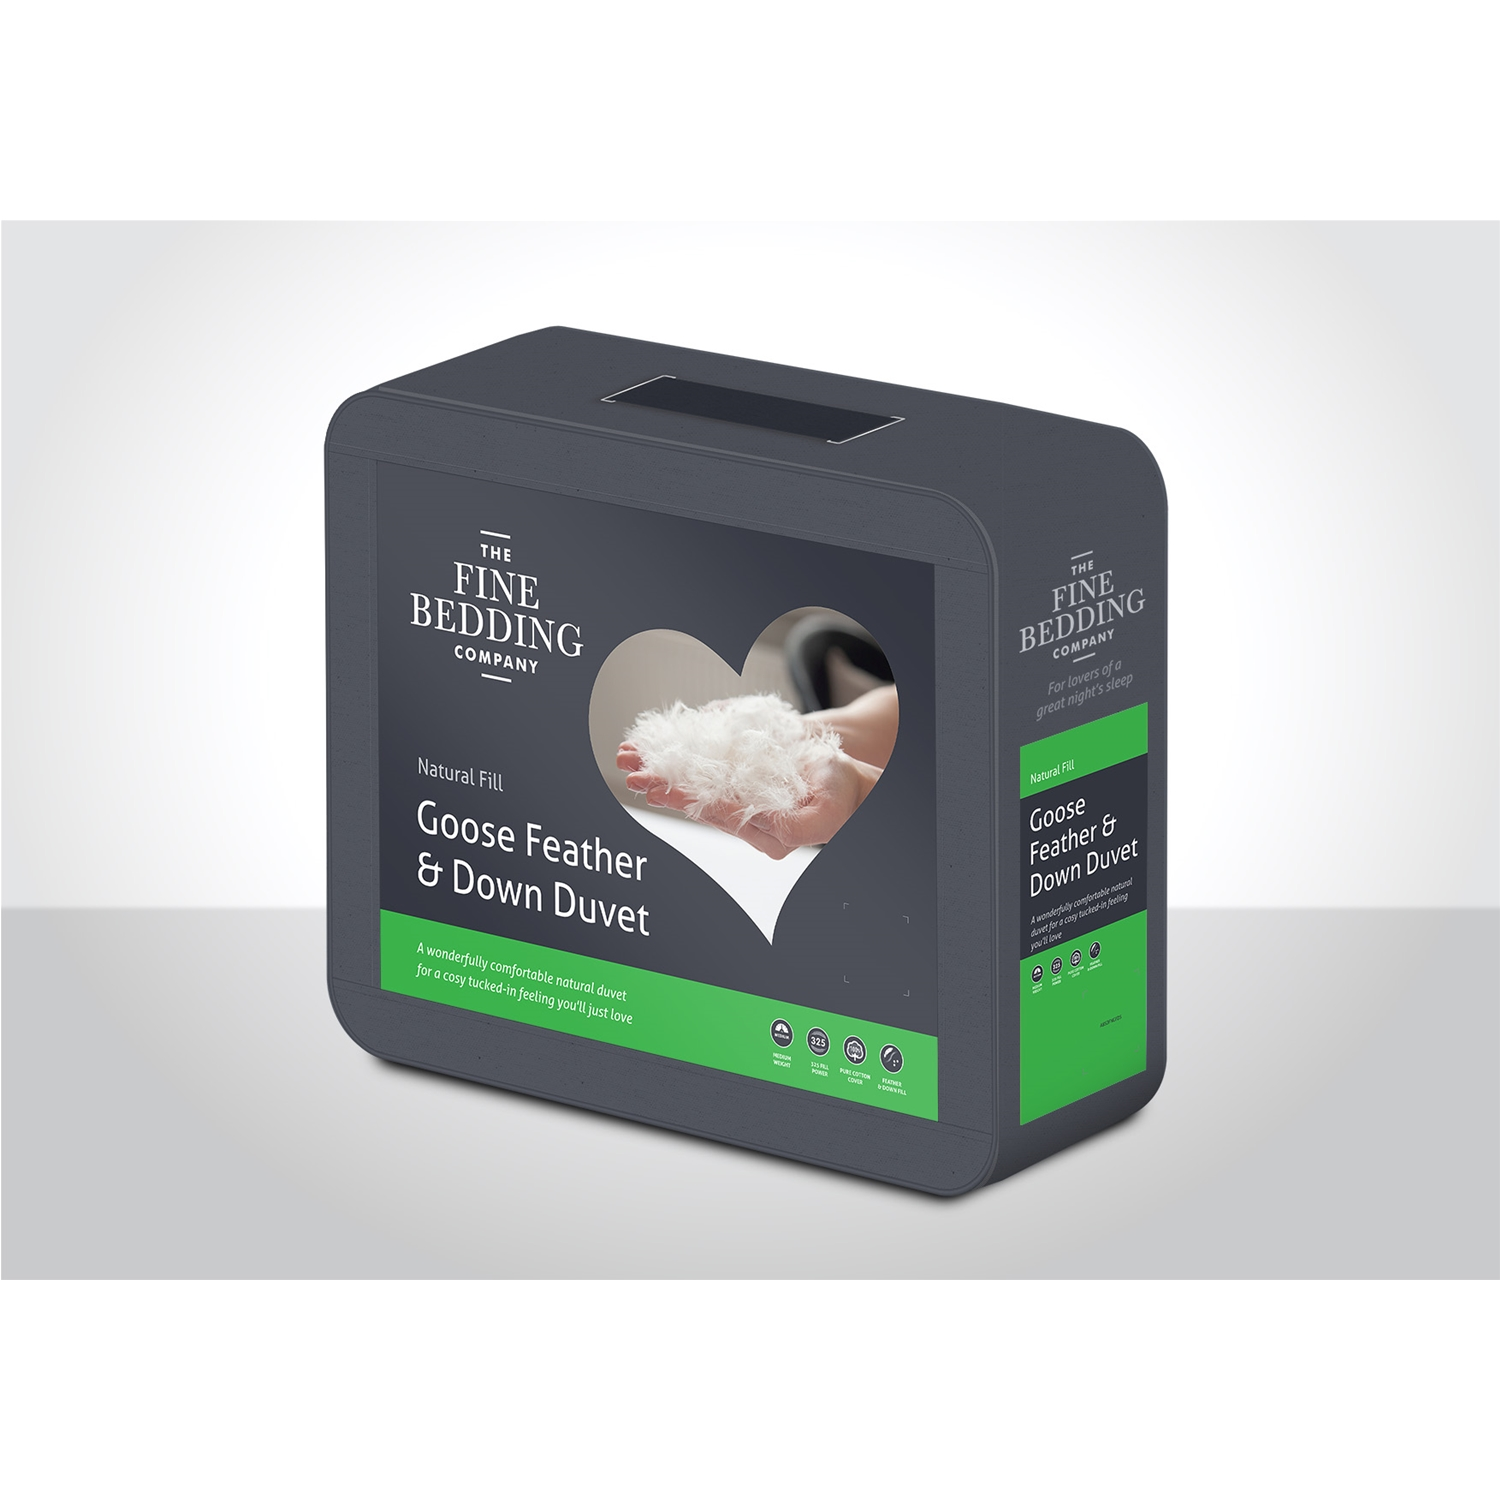 Image of Fine Bedding Company Goose Feather & Down Duvet, 4.5 Tog, Single